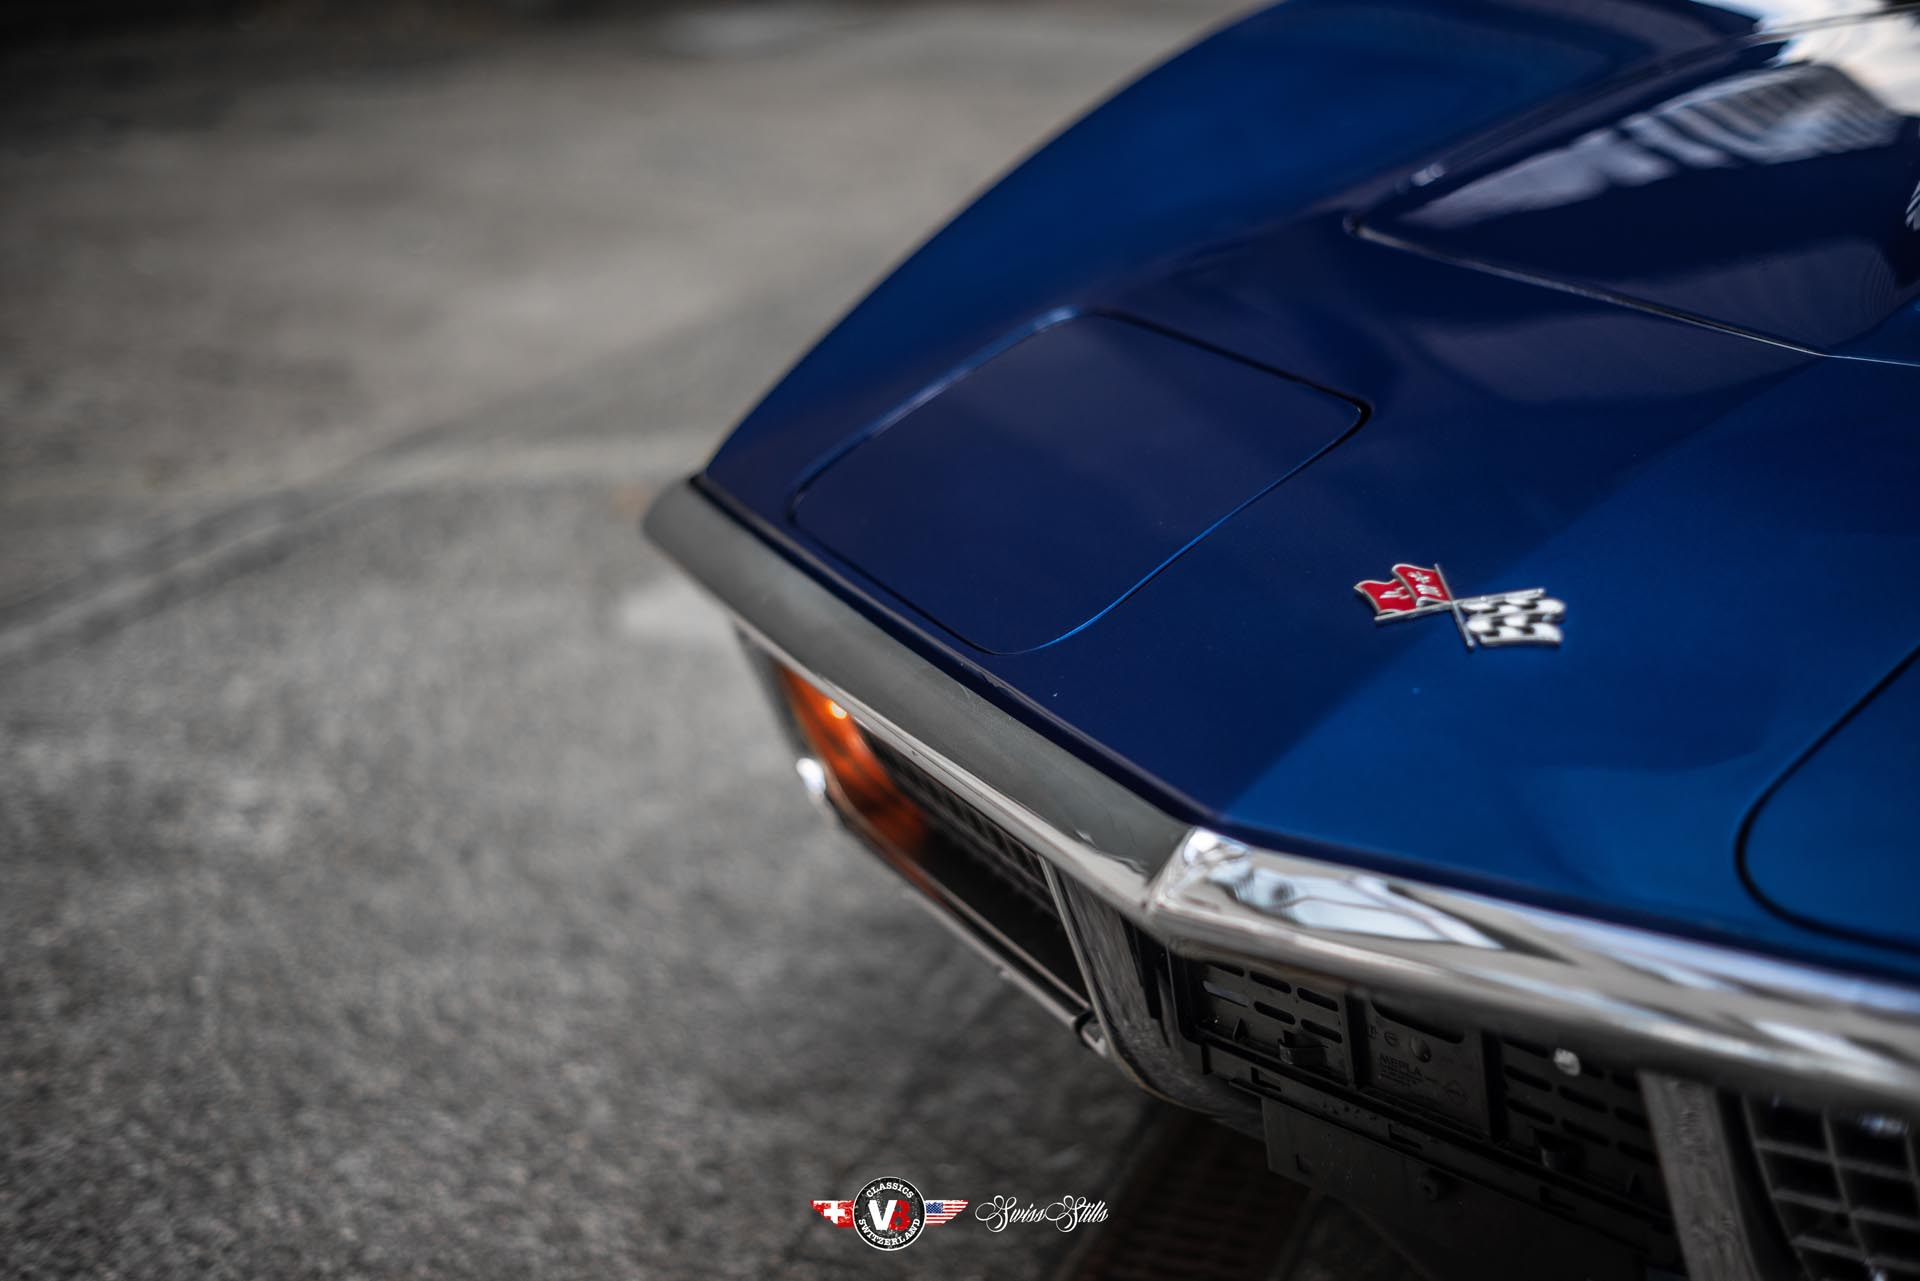 1972 Corvette C3 Stingray